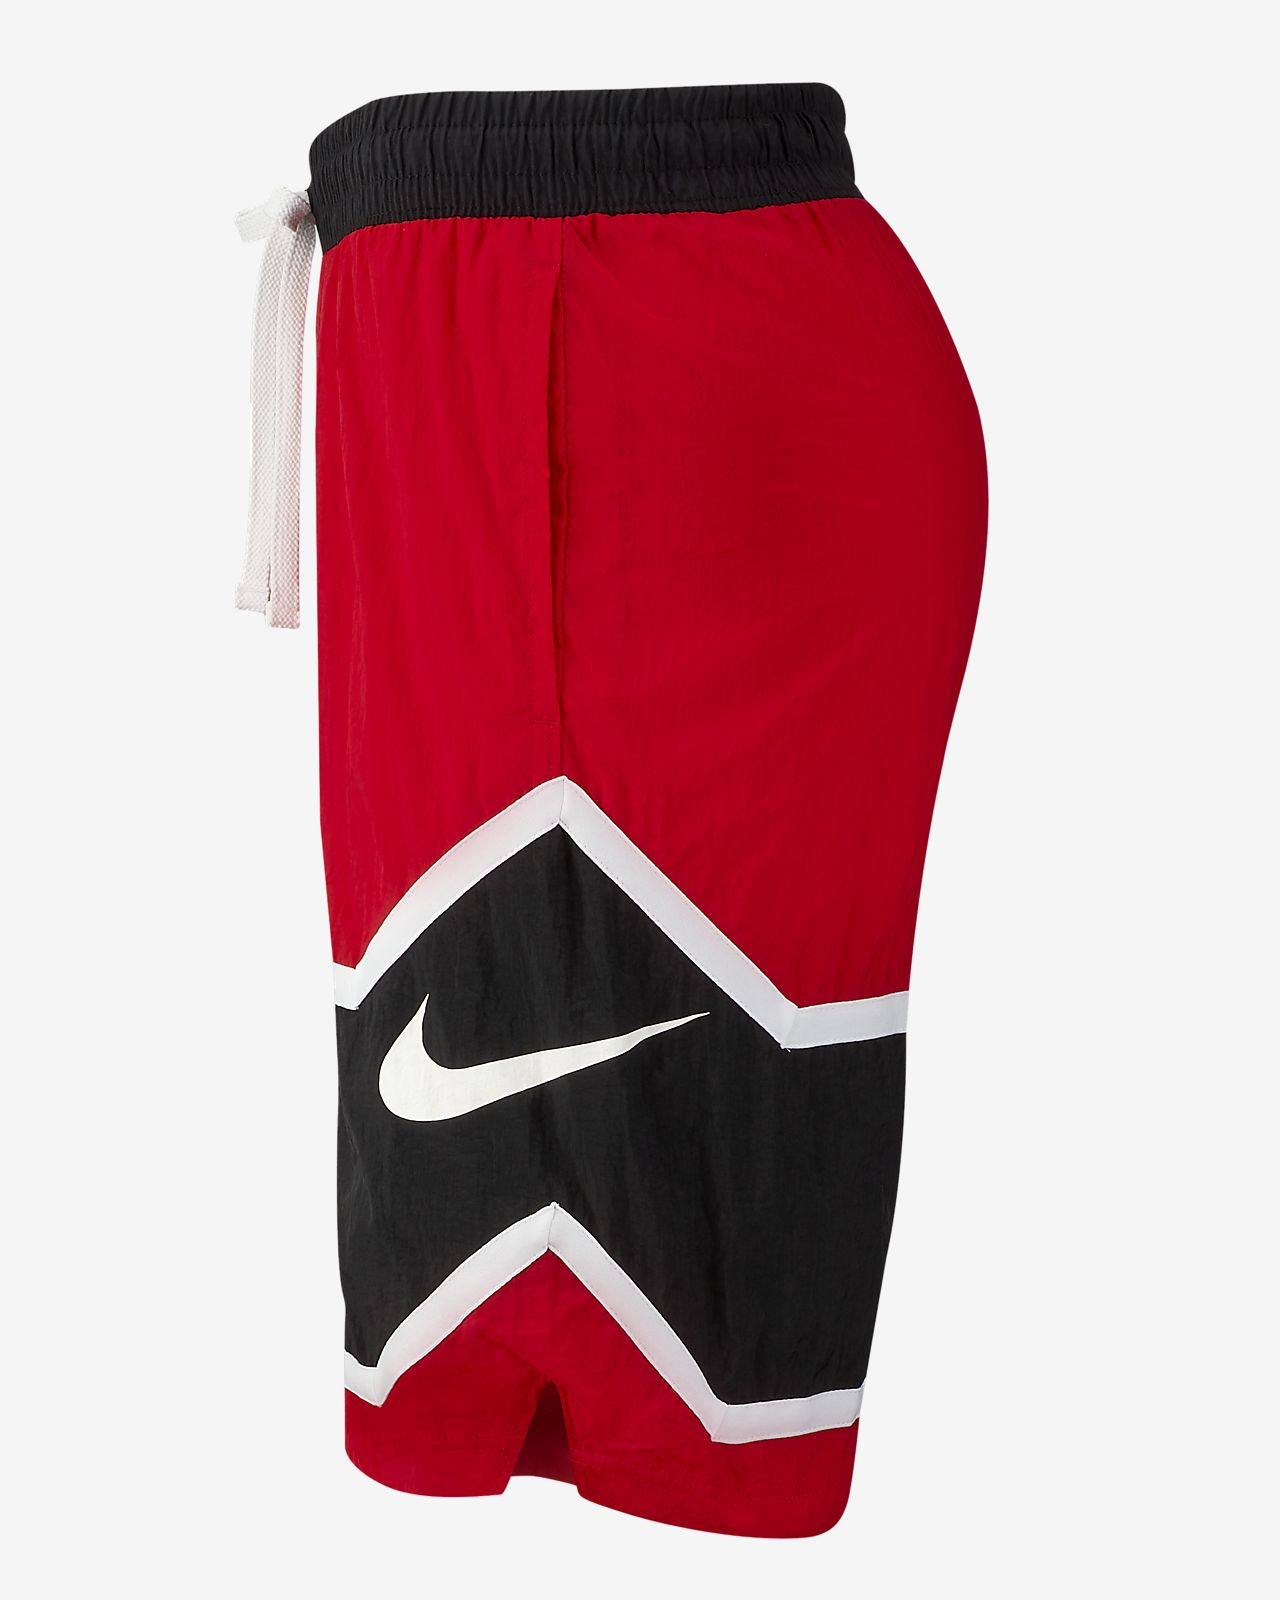 a78b66865 Low Resolution Nike Throwback Men's Basketball Shorts Nike Throwback Men's Basketball  Shorts